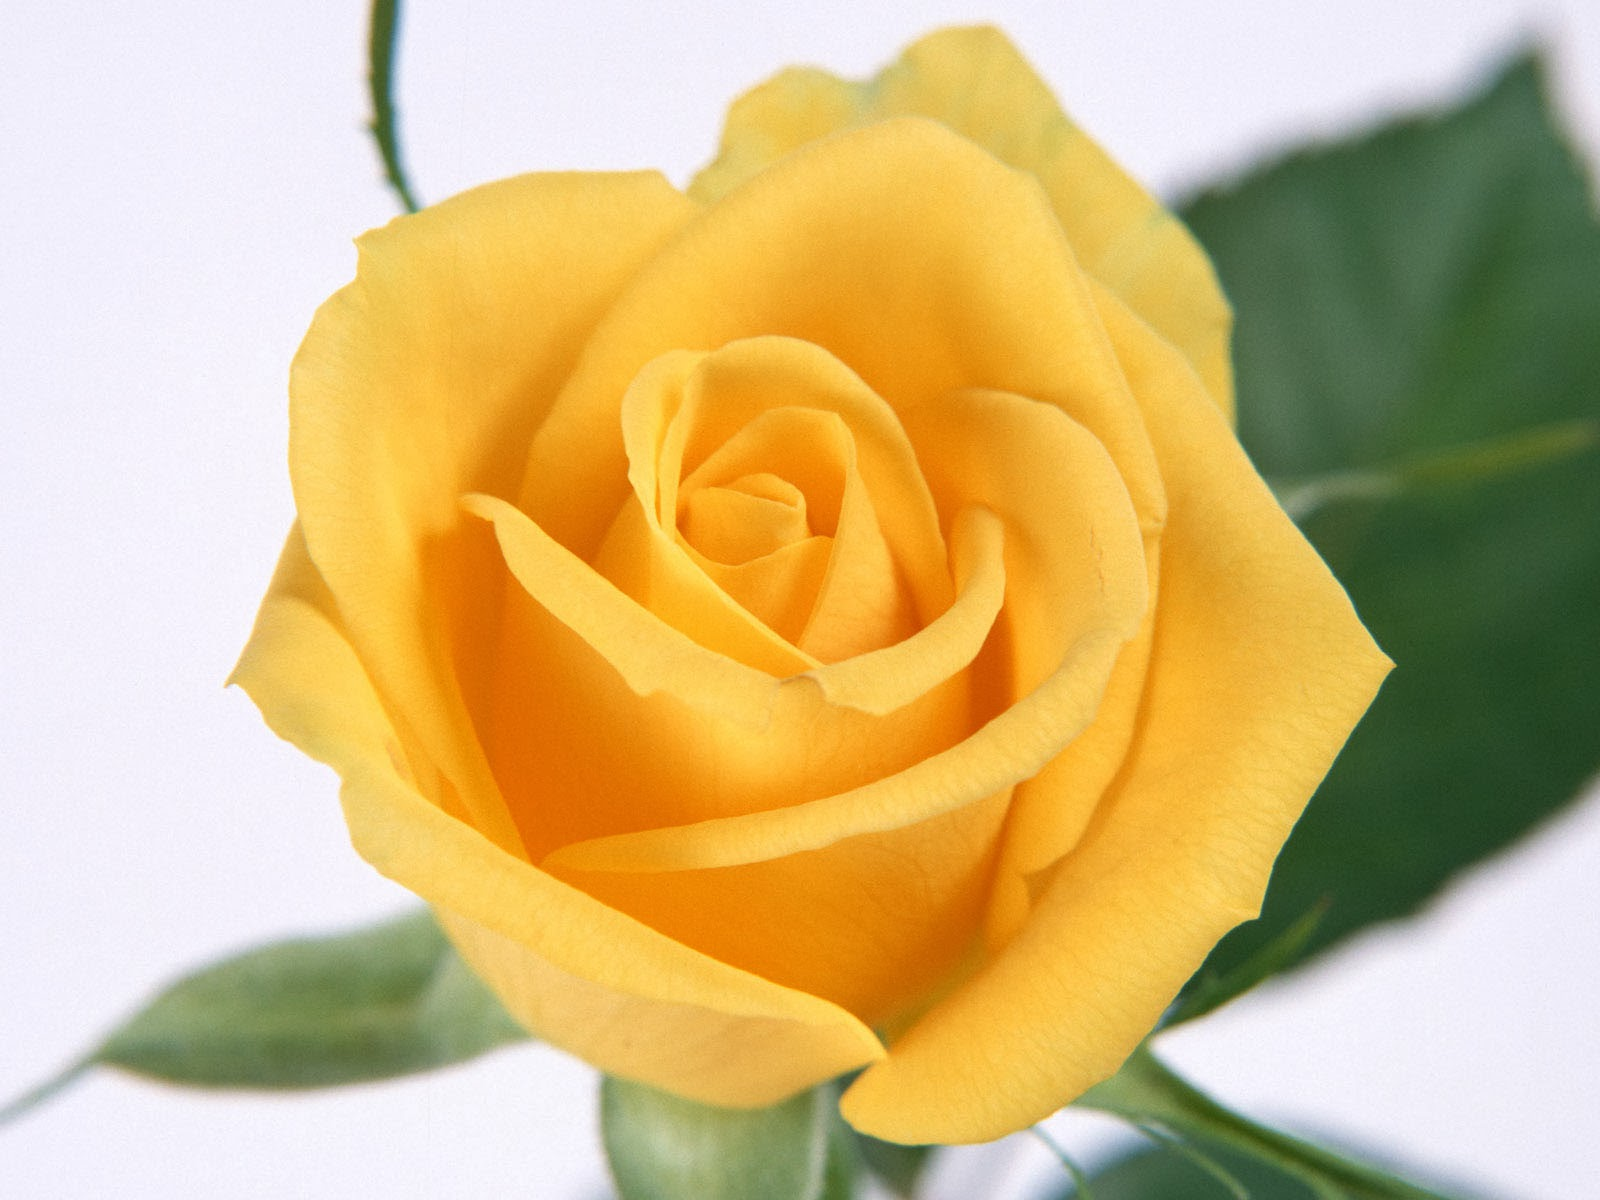 Yellow Rose Wallpapers - Top Wallpaper Desktop